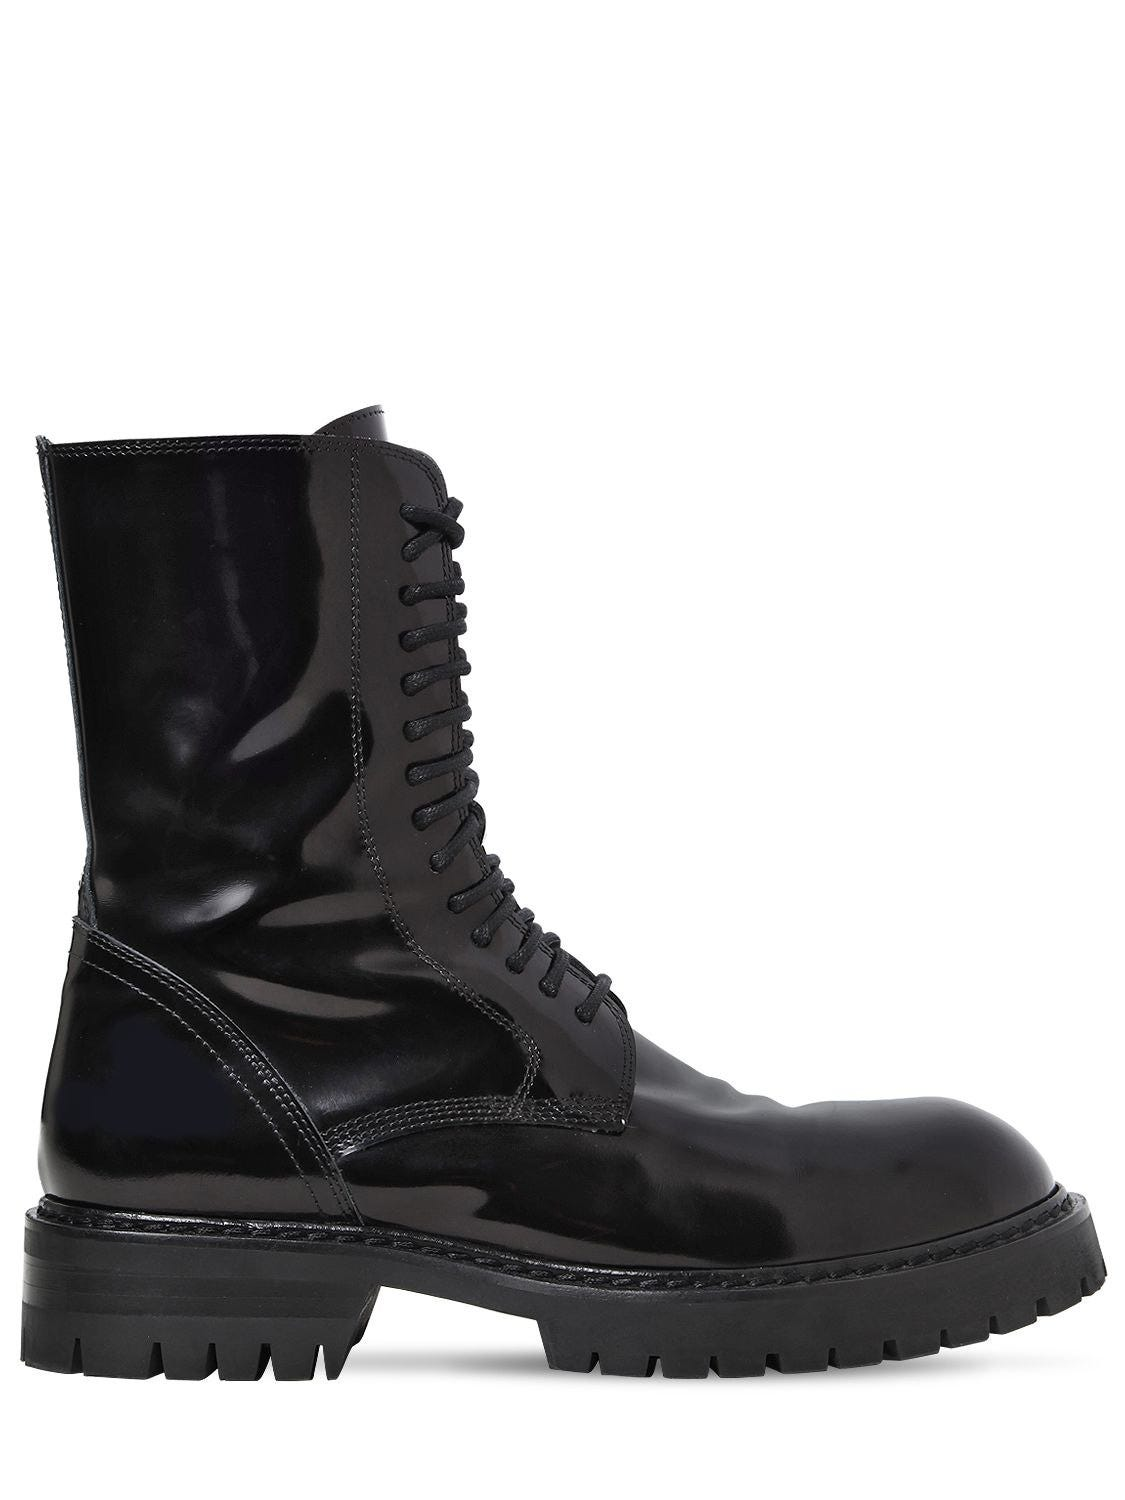 61a38a337 Womens Boots Trends - Best Winter 2019 Boot Styles